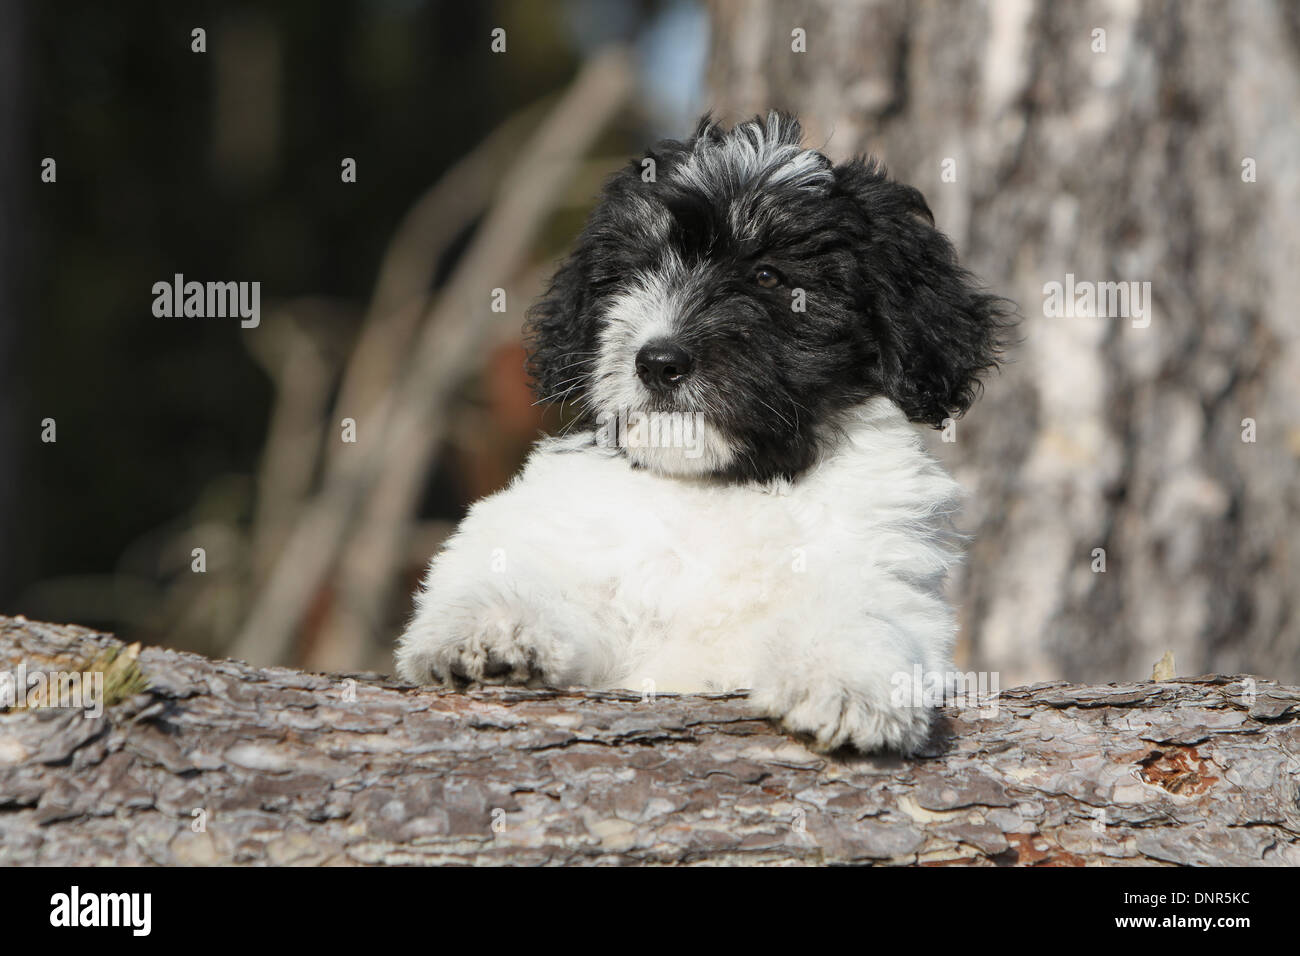 Cute Small White Dog On Tree Stump Stock Photos Cute Small White